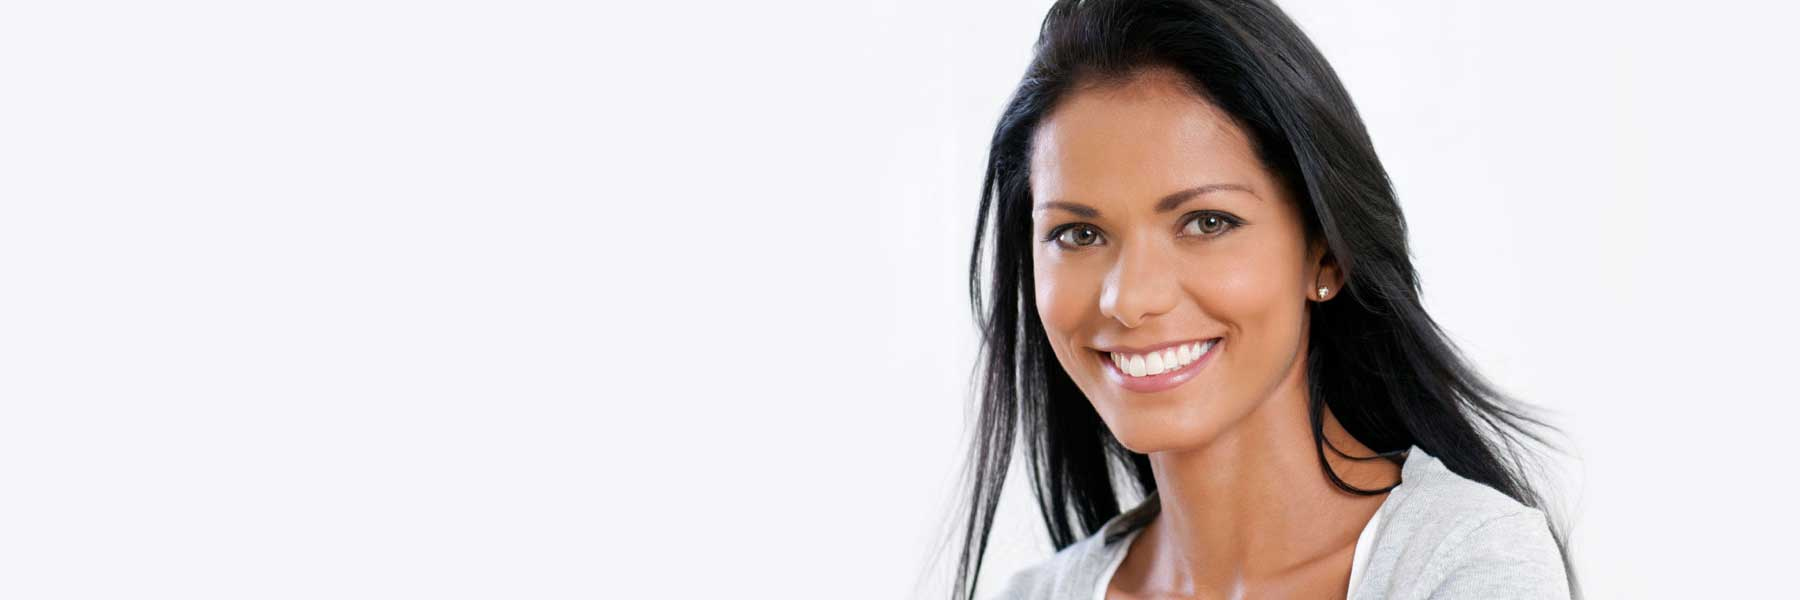 Tooth Colored Fillings banner image